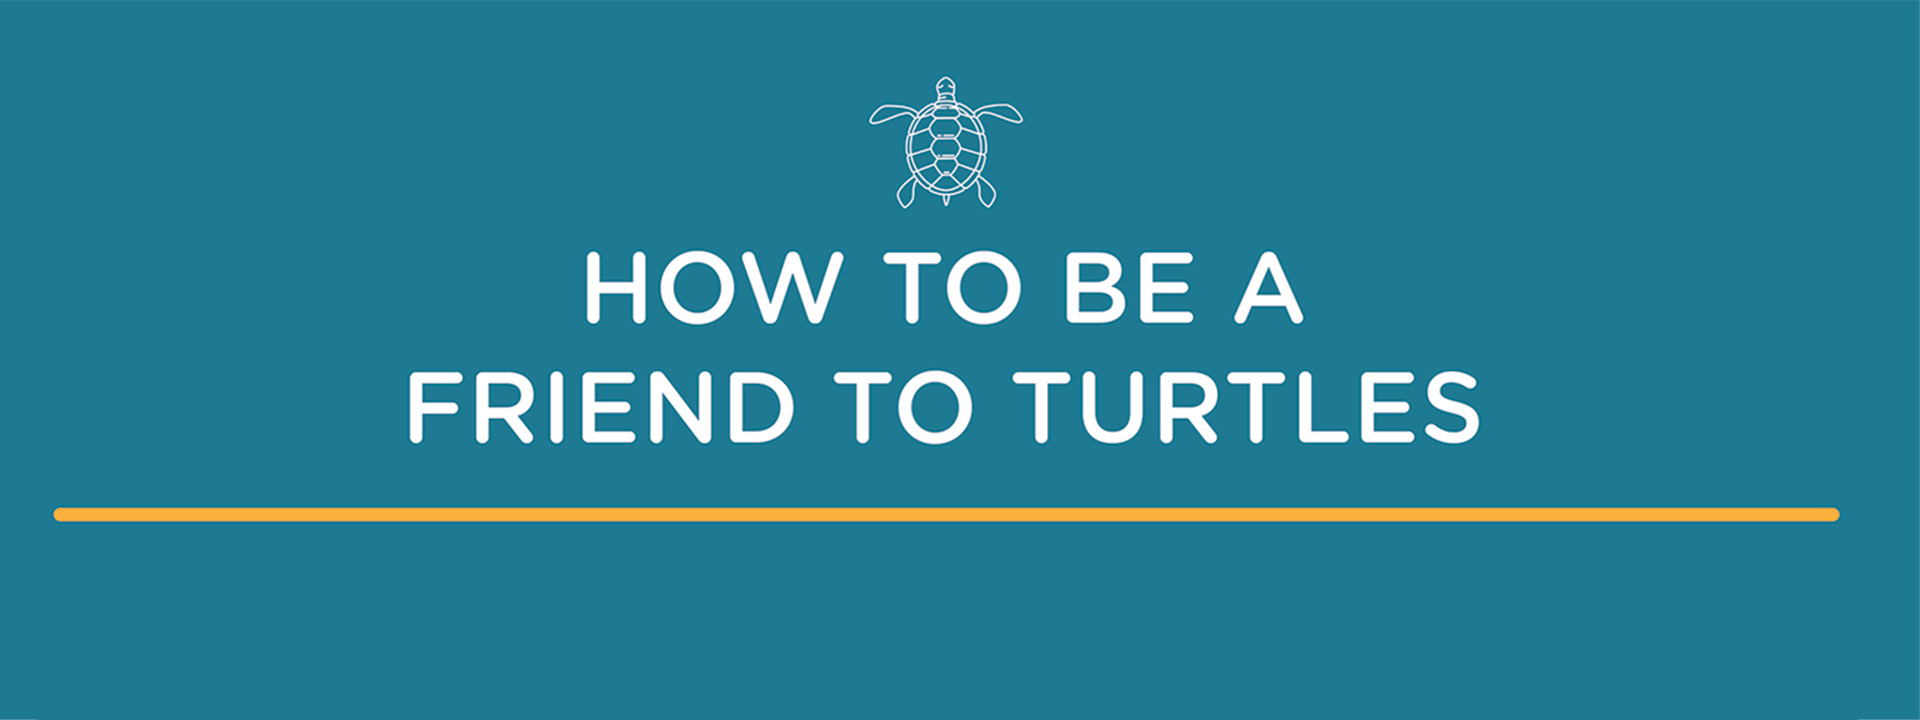 How to be a friend to turtles